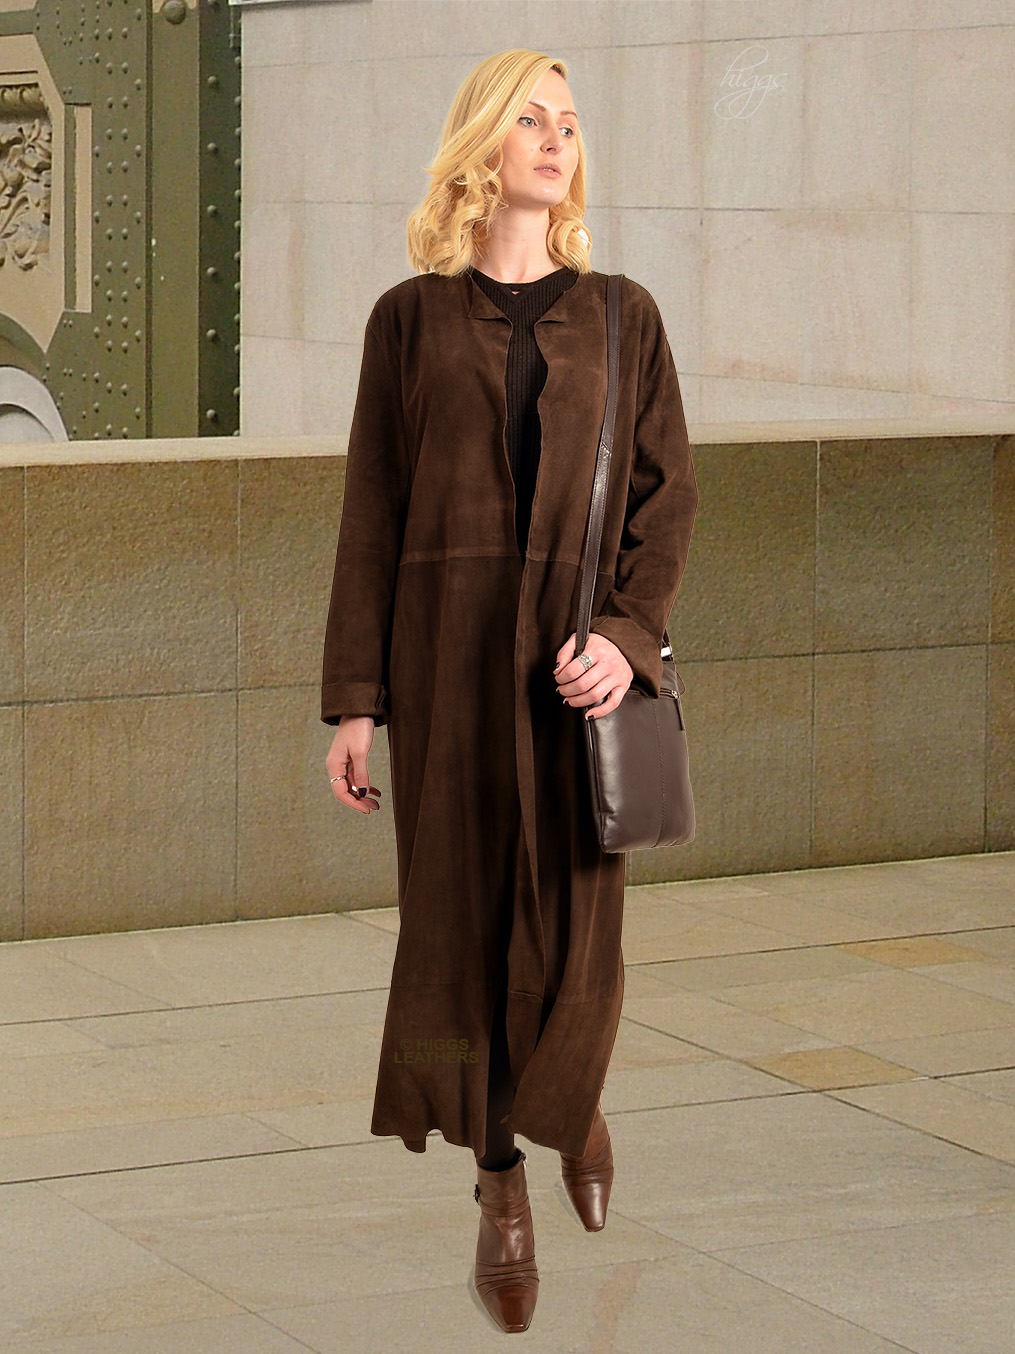 Higgs Leathers {36' to 38' bust HALF PRICE!}   Stephanie (Brown Kidskin Suede coat) Casually stunning!